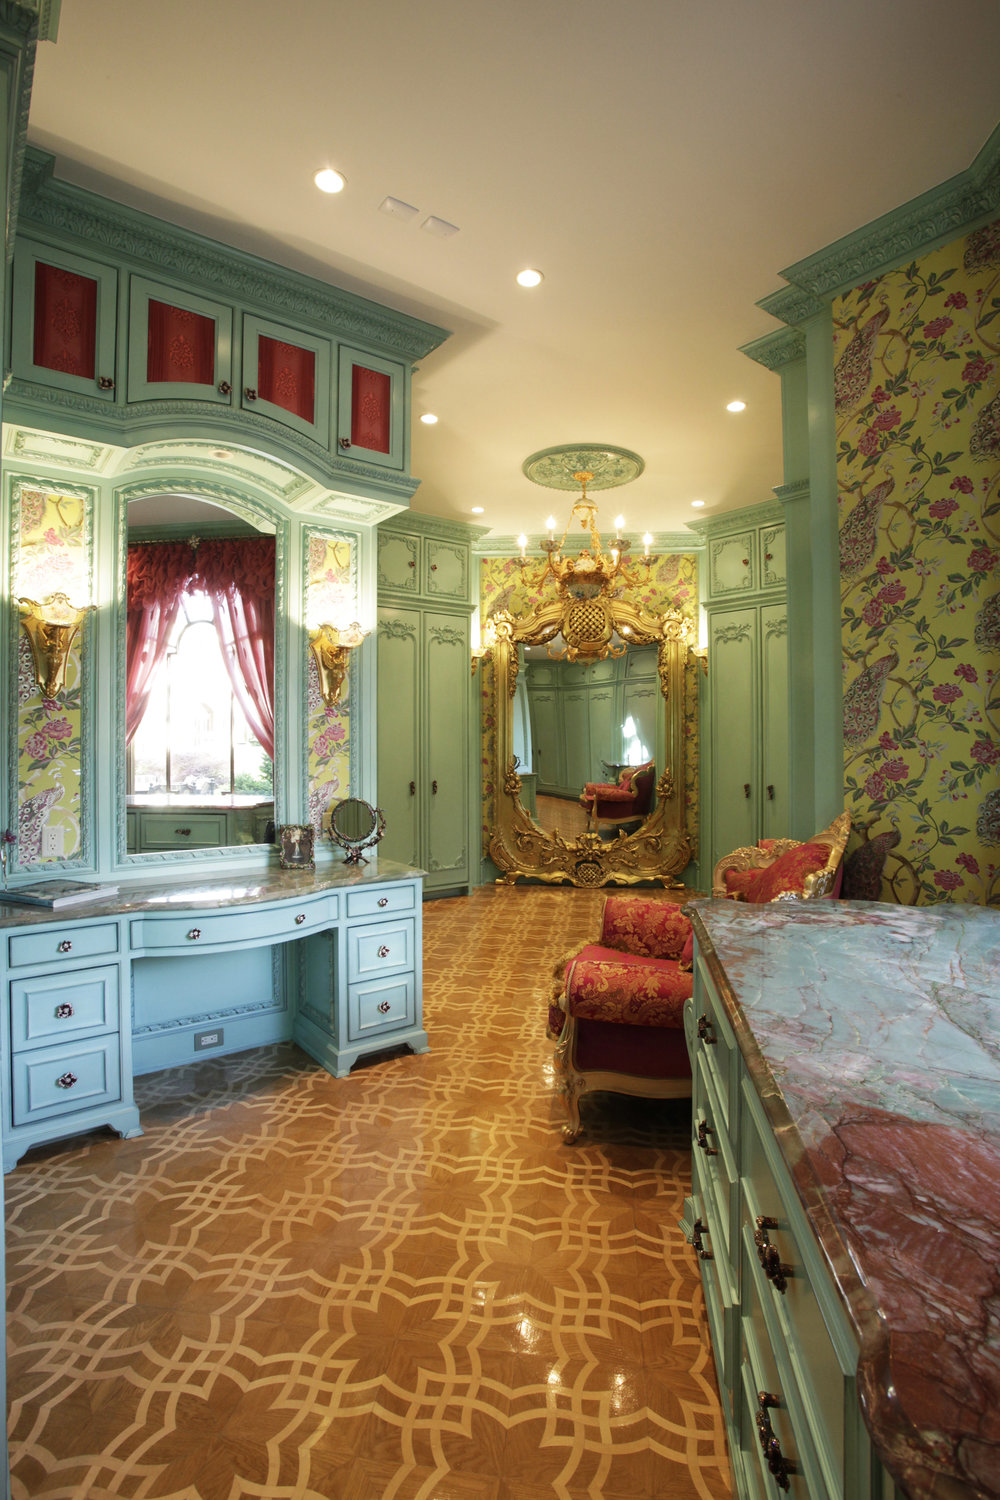 954_colonial_road_MLS_HID897974_ROOMdressingroom1.jpg